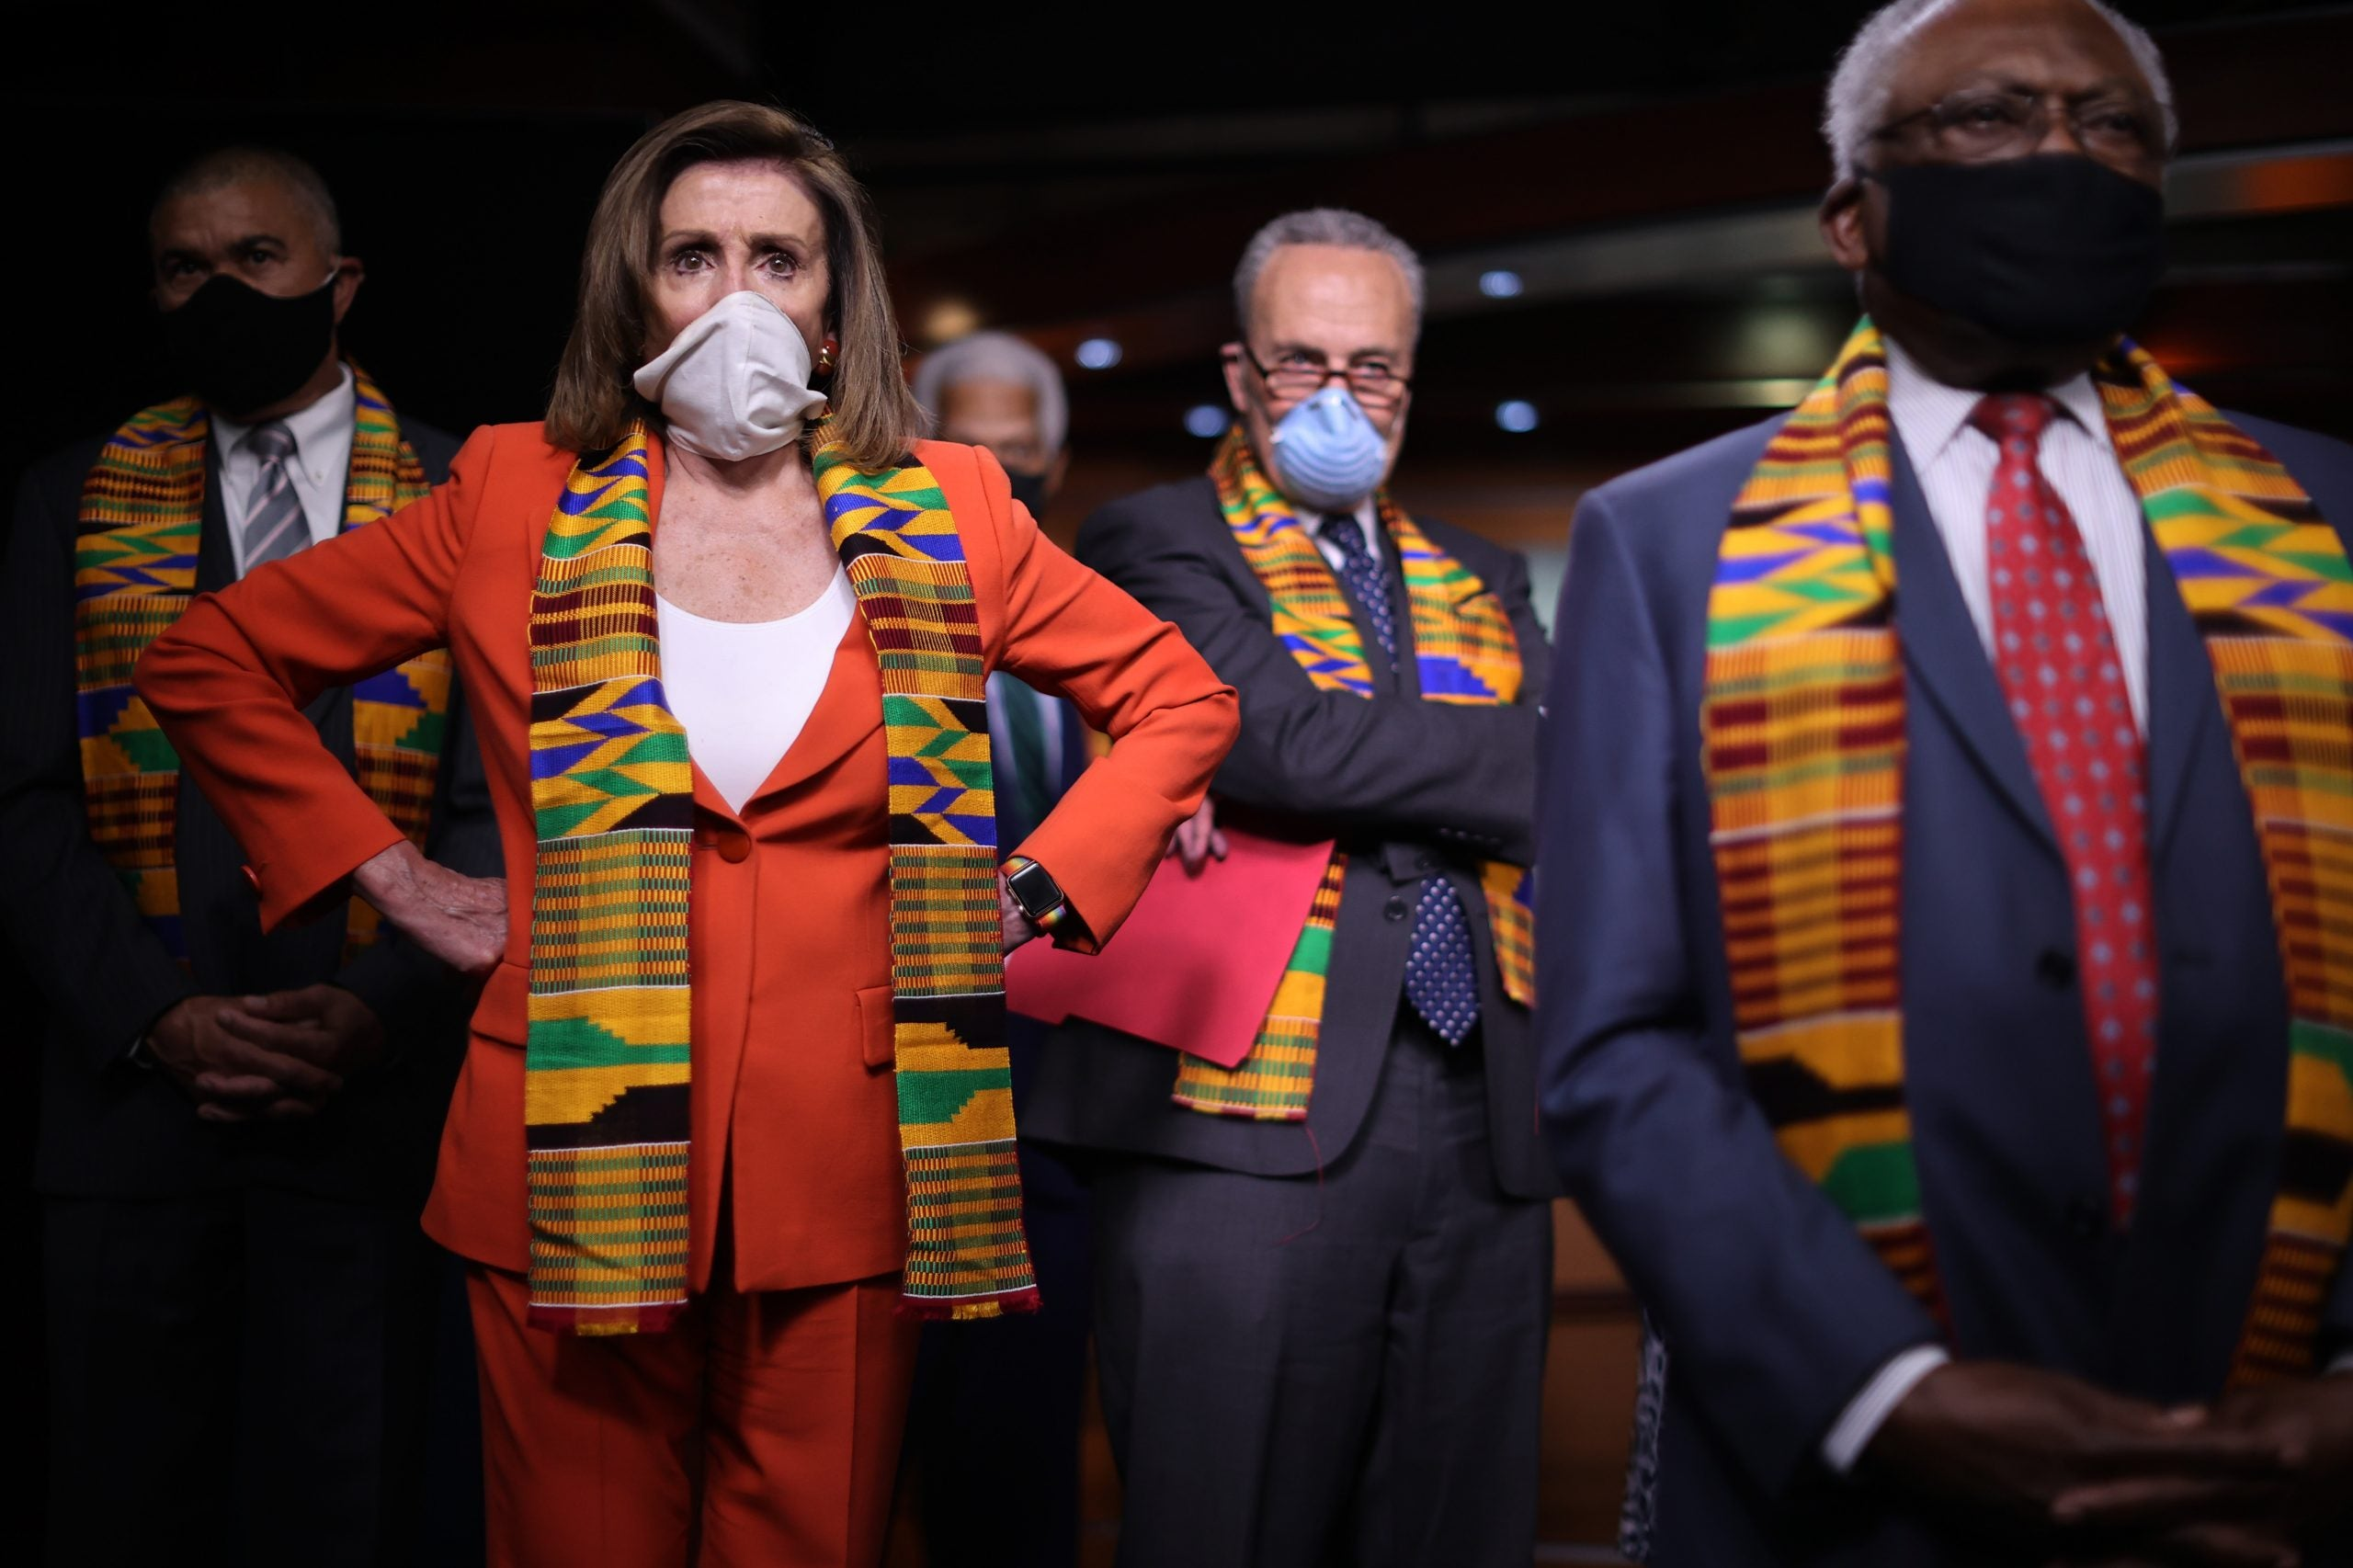 WASHINGTON, DC - JUNE 08: Speaker of the House Nancy Pelosi (D-CA) joins fellow Democrats from the House and Senate, including (L-R) Rep. Lacy Clay (D-MO), Senate Minority Leader Charles Schumer (D-NY) and House Majority Whip James Clyburn (D-SC), to announce new legislation to end excessive use of force by police across the country and make it easier to identify, track, and prosecute police misconduct at the U.S. Capitol June 08, 2020 in Washington, DC.